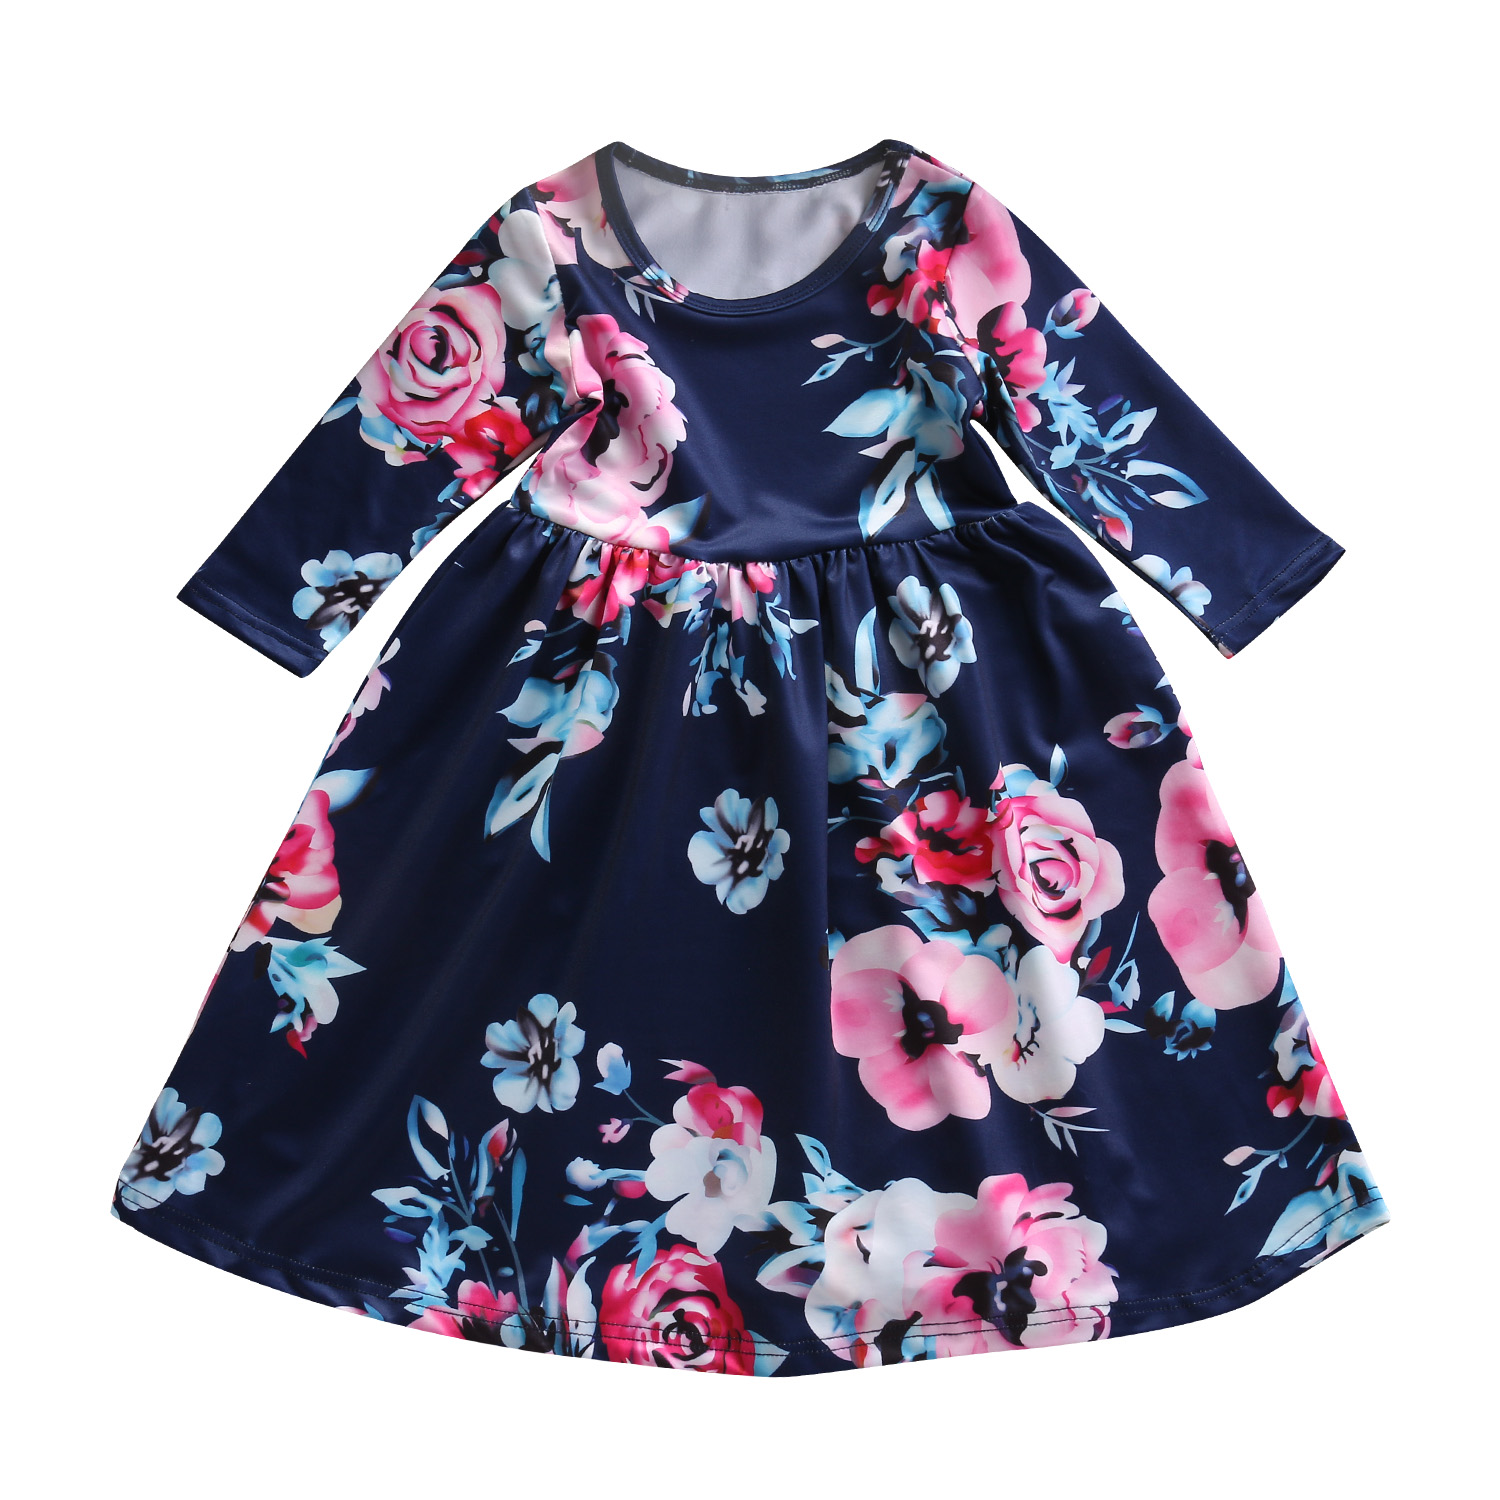 Girls Dresses 2019 Fashion Girl Dress Lace Floral Design Baby Girls Dress Kids Dresses For Girls Casual Wear Children Clothing in Dresses from Mother Kids